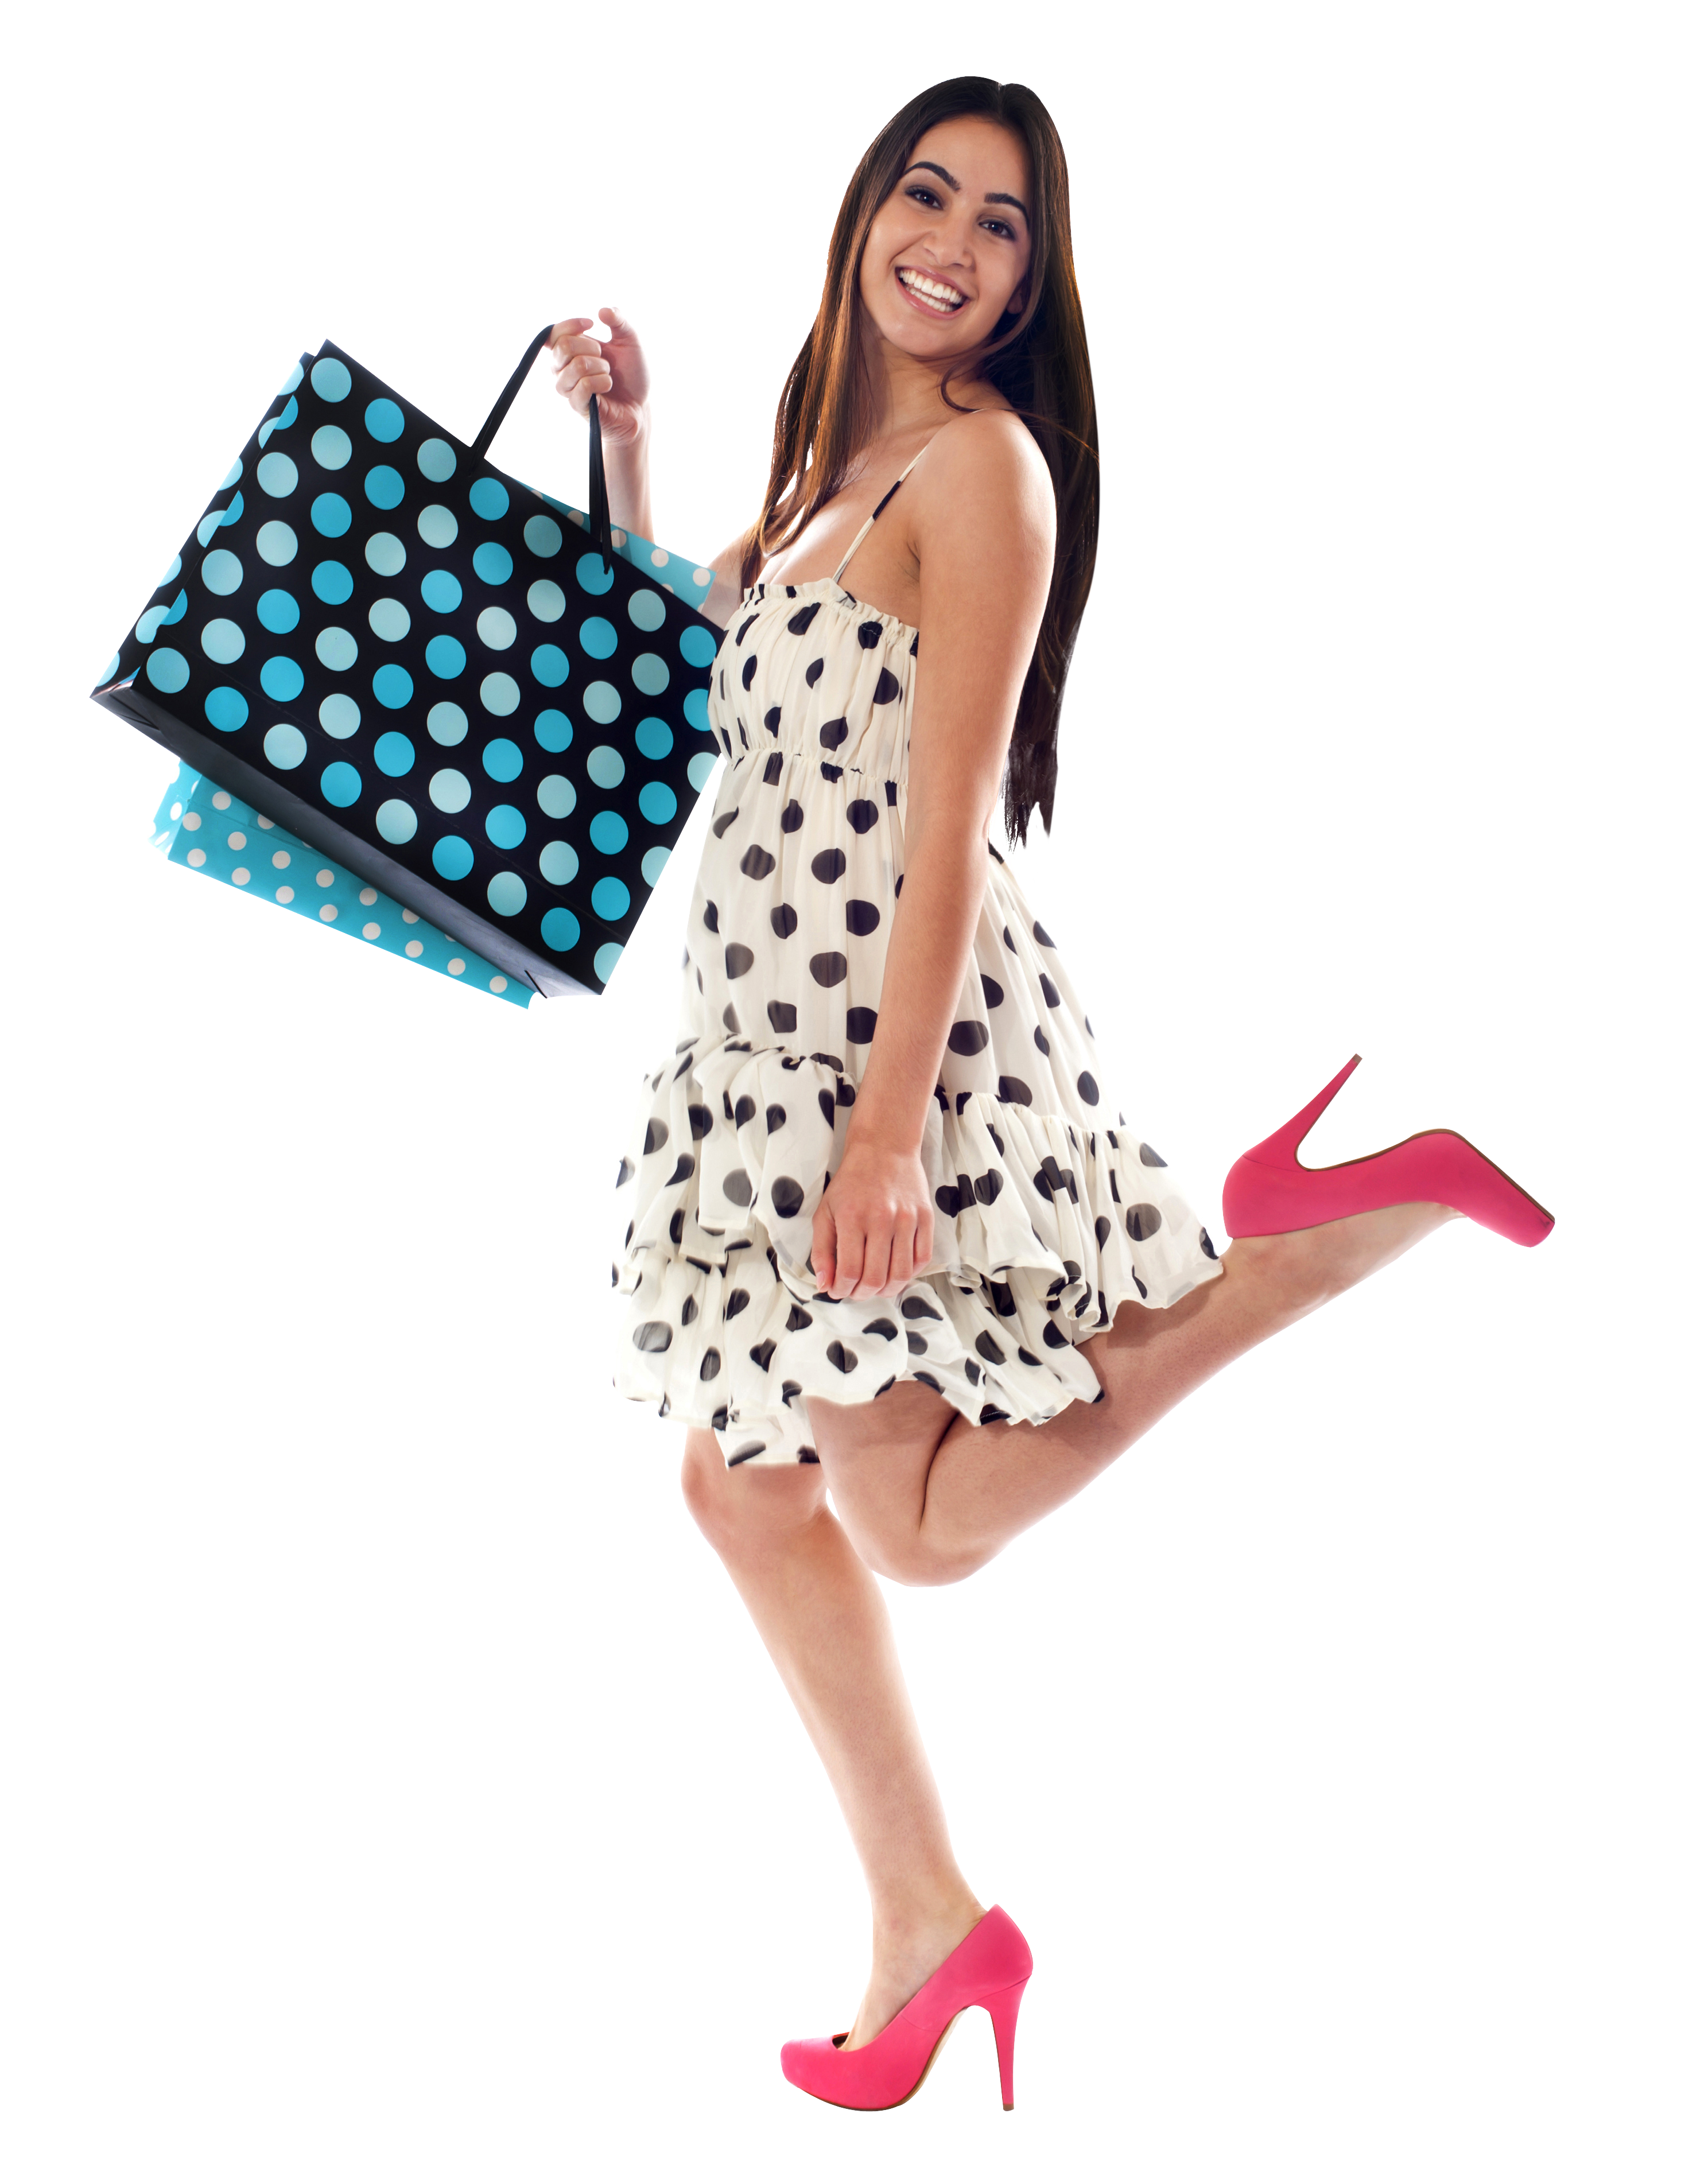 Woman shopping png. Women free commercial use